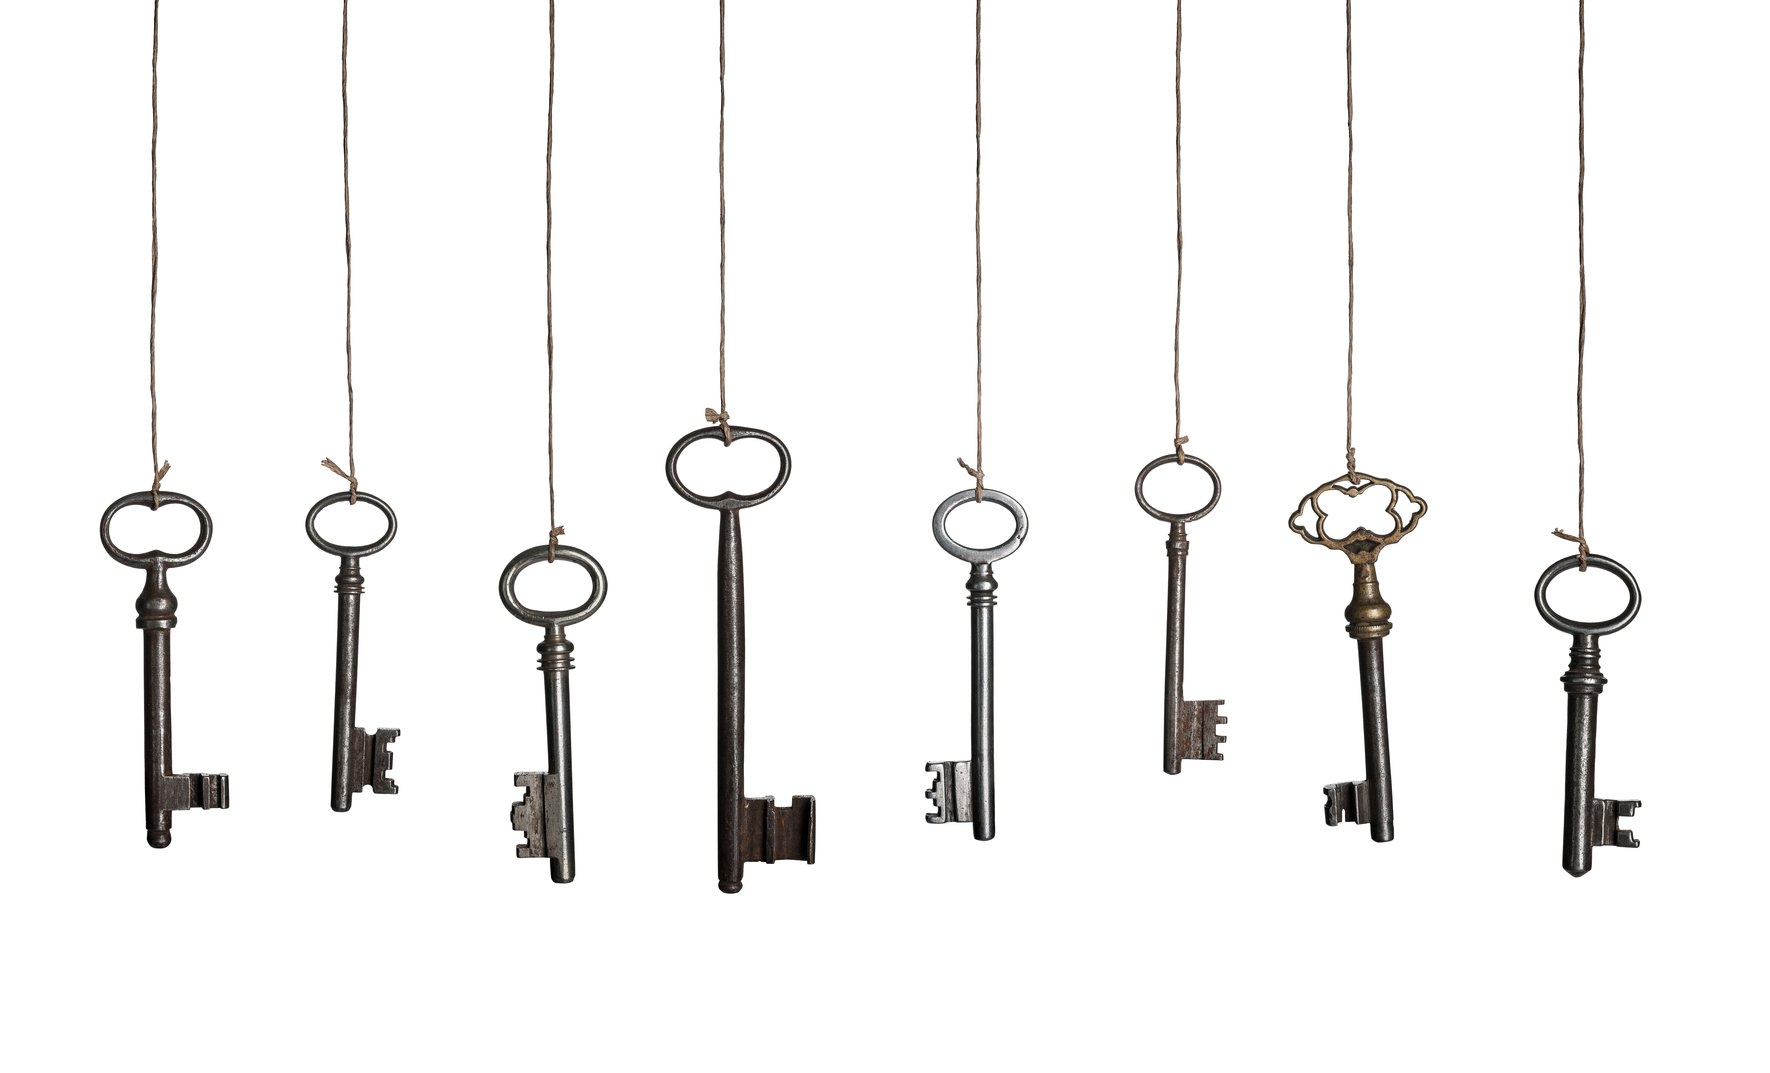 Picture of keys hanging on strings